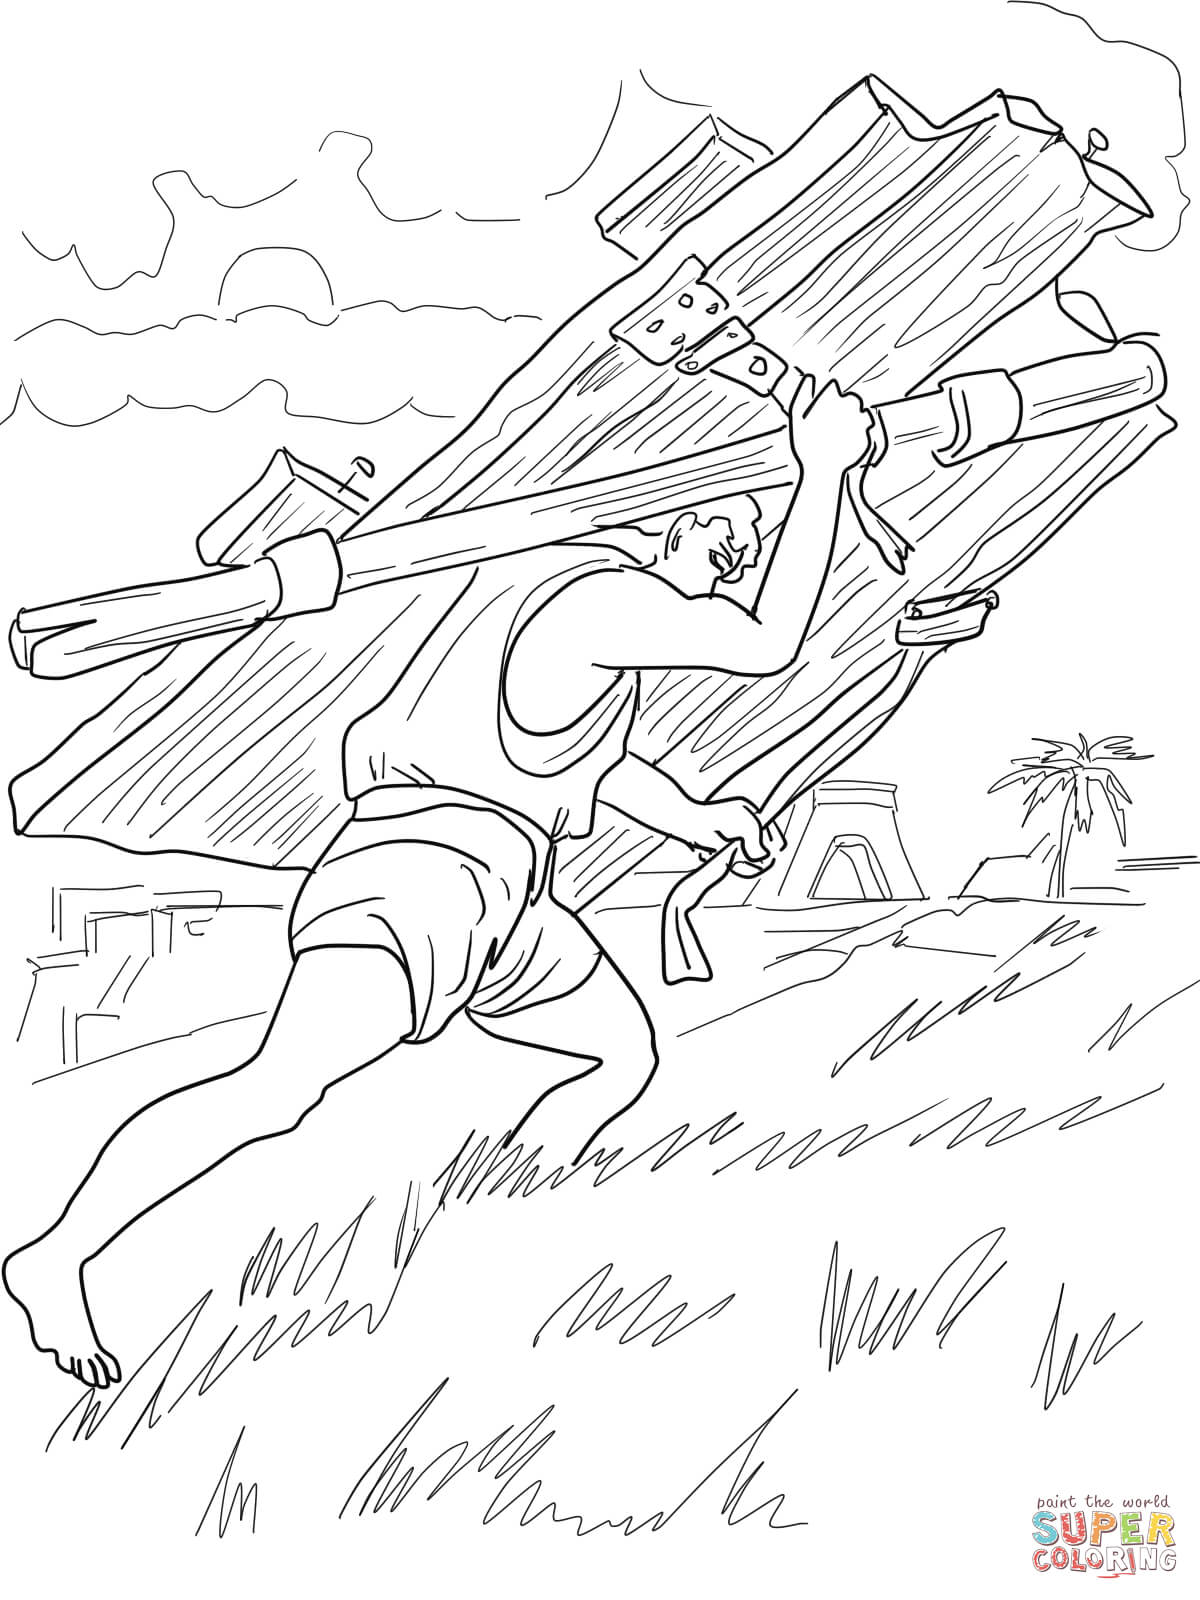 Samson Carries Gates Of Gaza Coloring Page